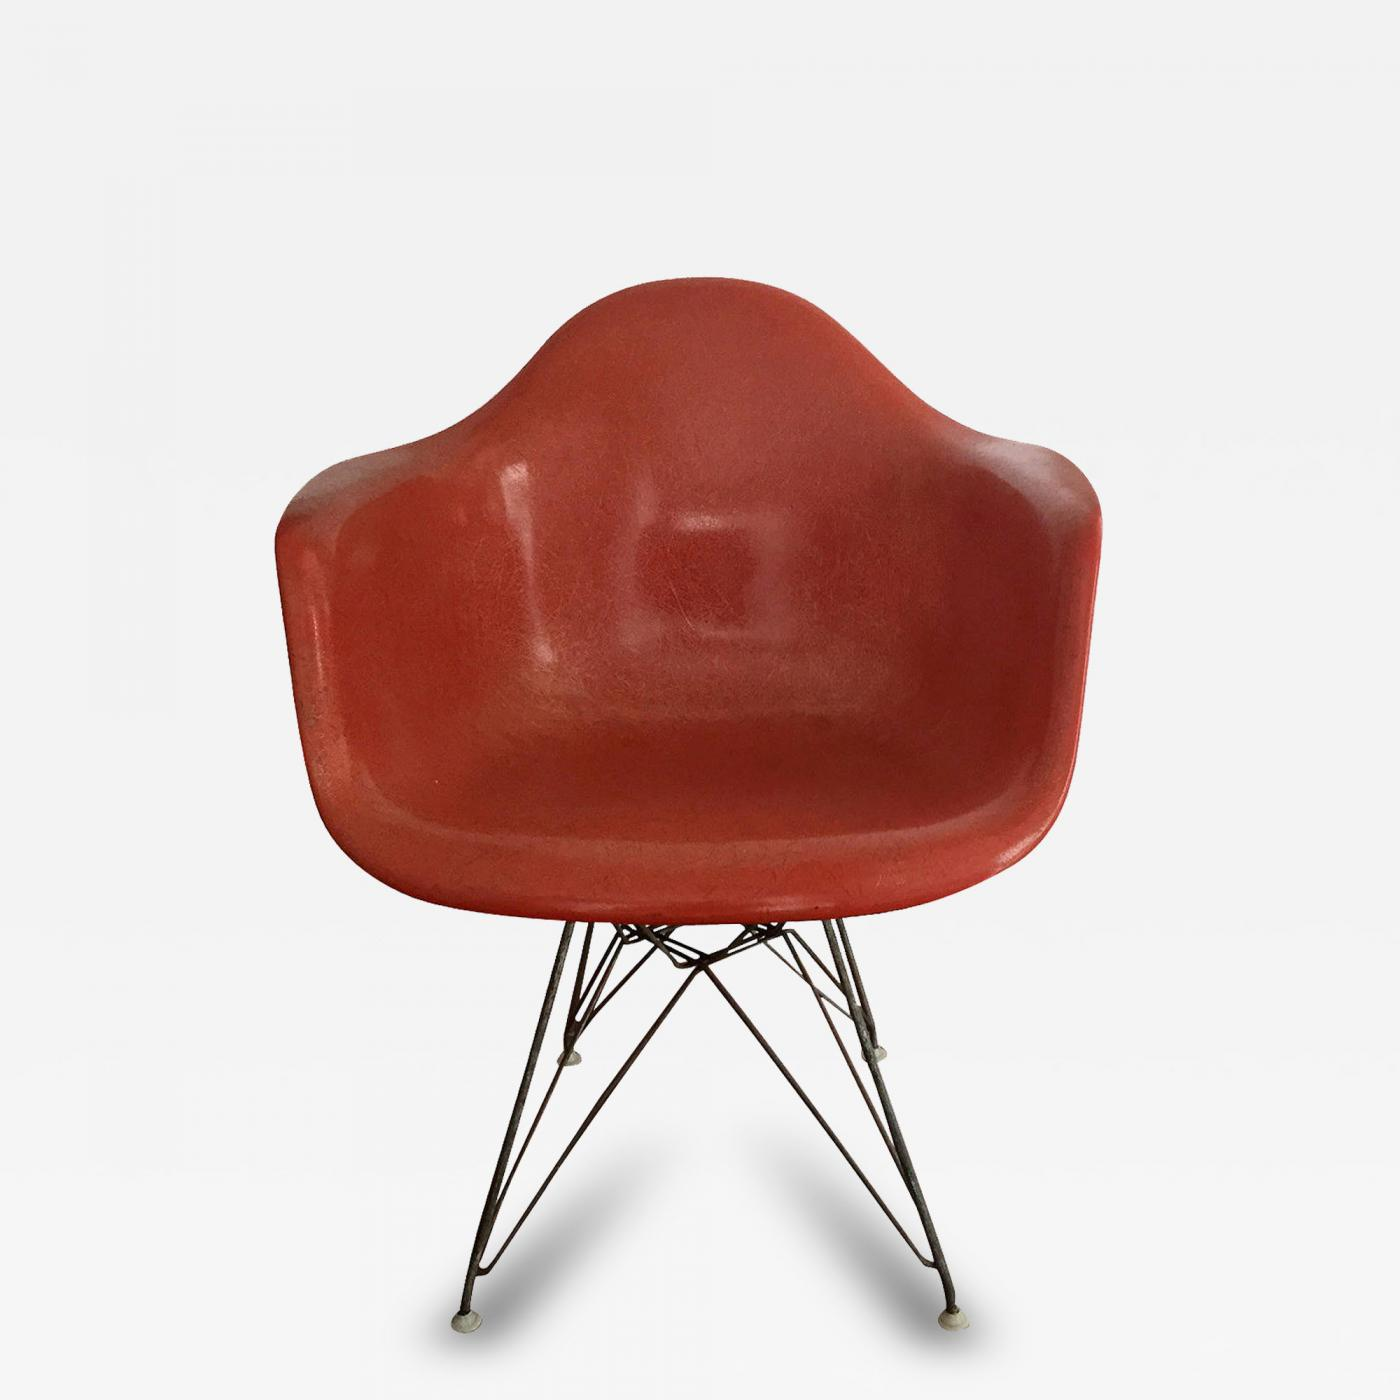 Charles & Ray Eames Early Fiberglass Shell DAR Chair by Charles